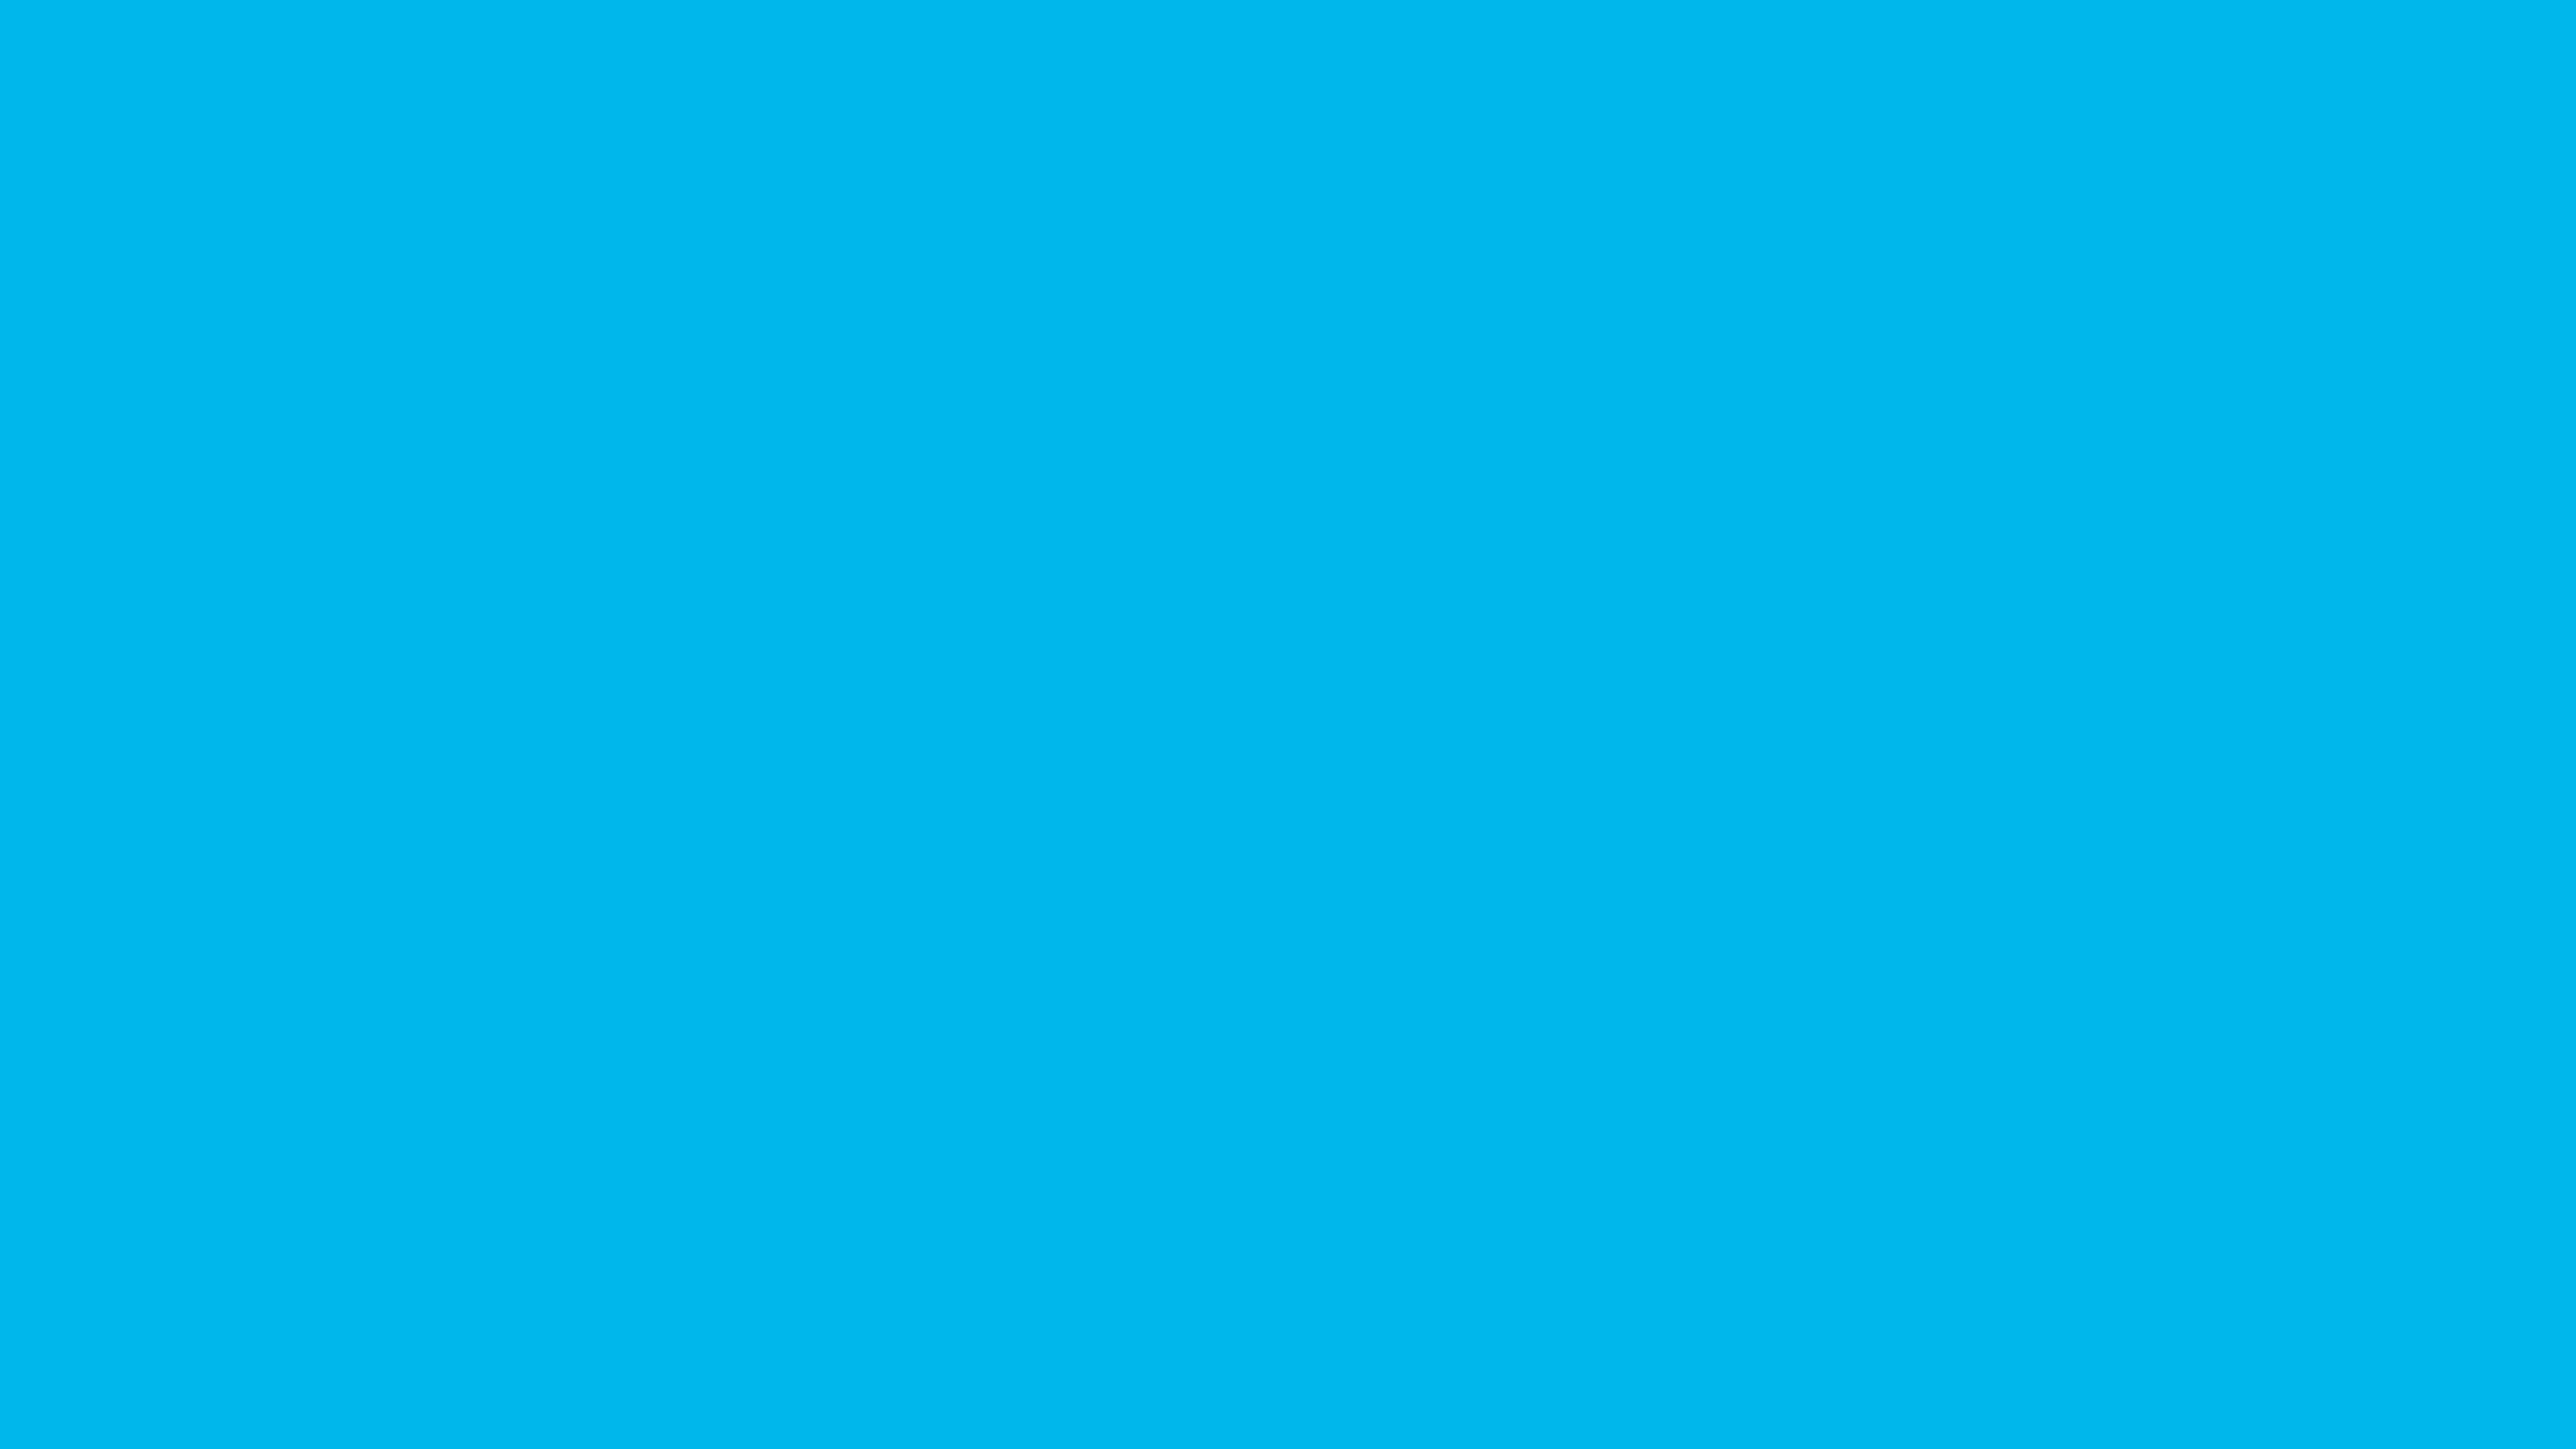 4096x2304 Cyan Process Solid Color Background